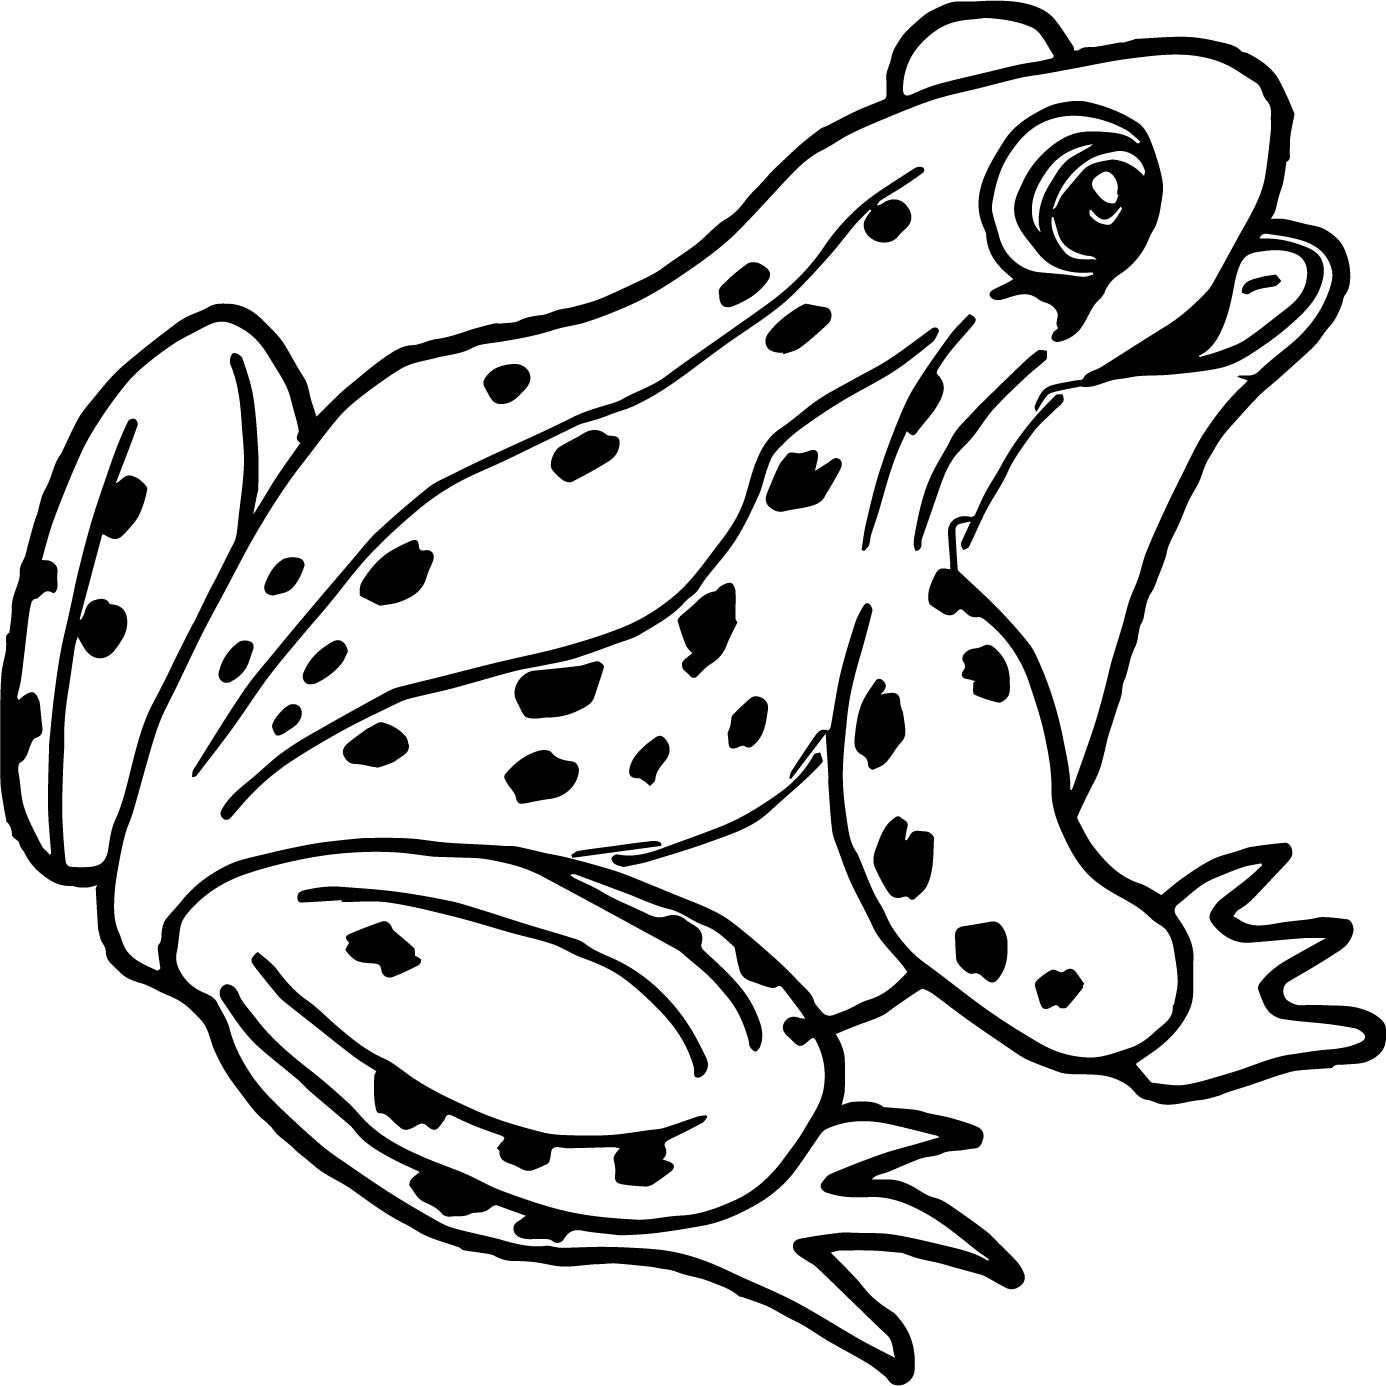 dark frog coloring pages - photo#20